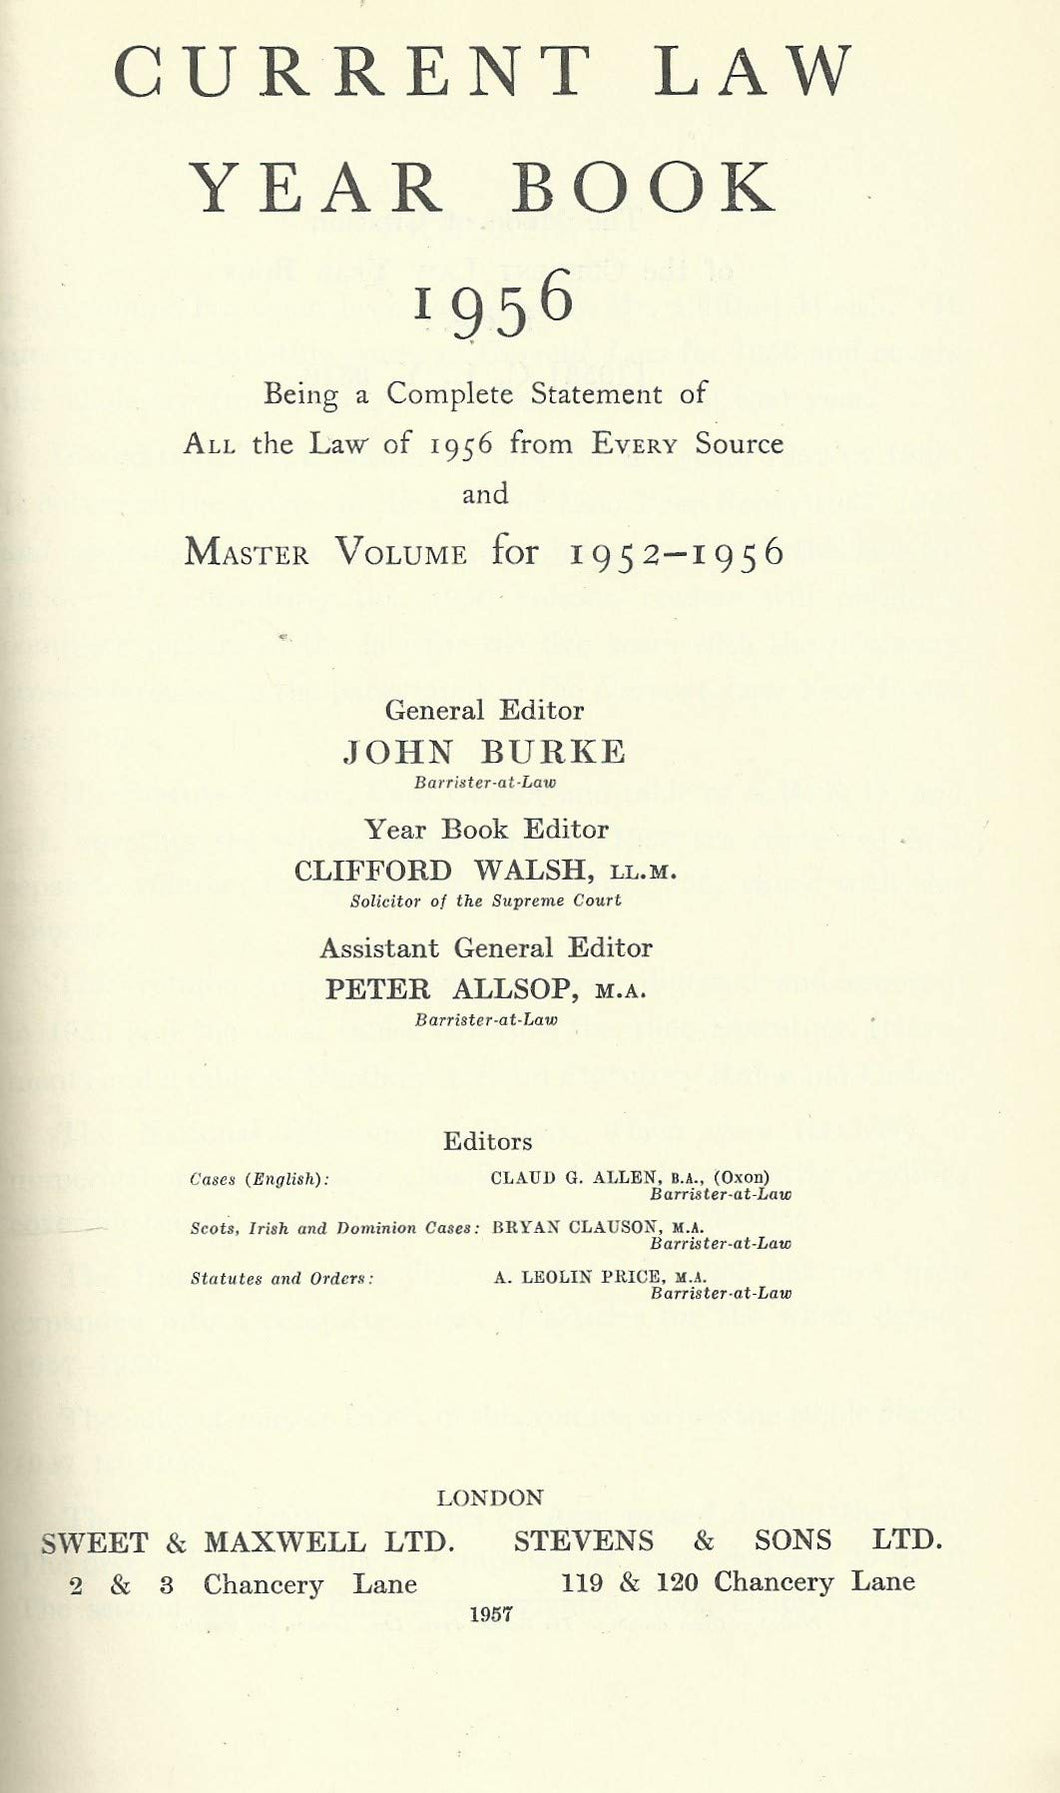 Current Law Year Book 1956